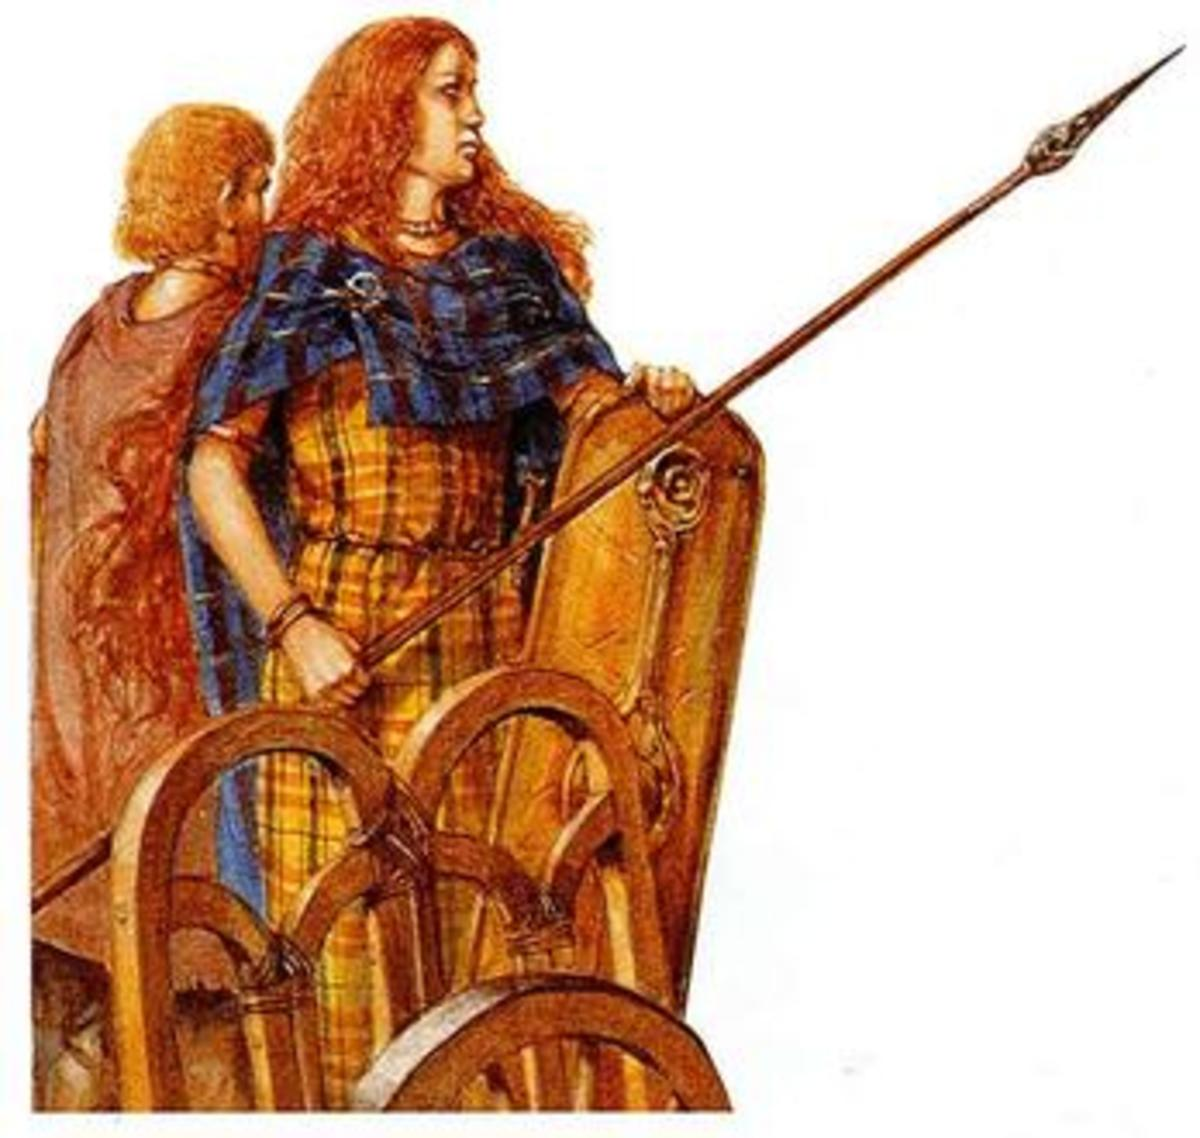 boudiccas revolt against the romans history essay Who was boudica boudica (also known as boudicca or boadicea and in welsh as buddug) was a celtic queen who led a rebellion against the roman.